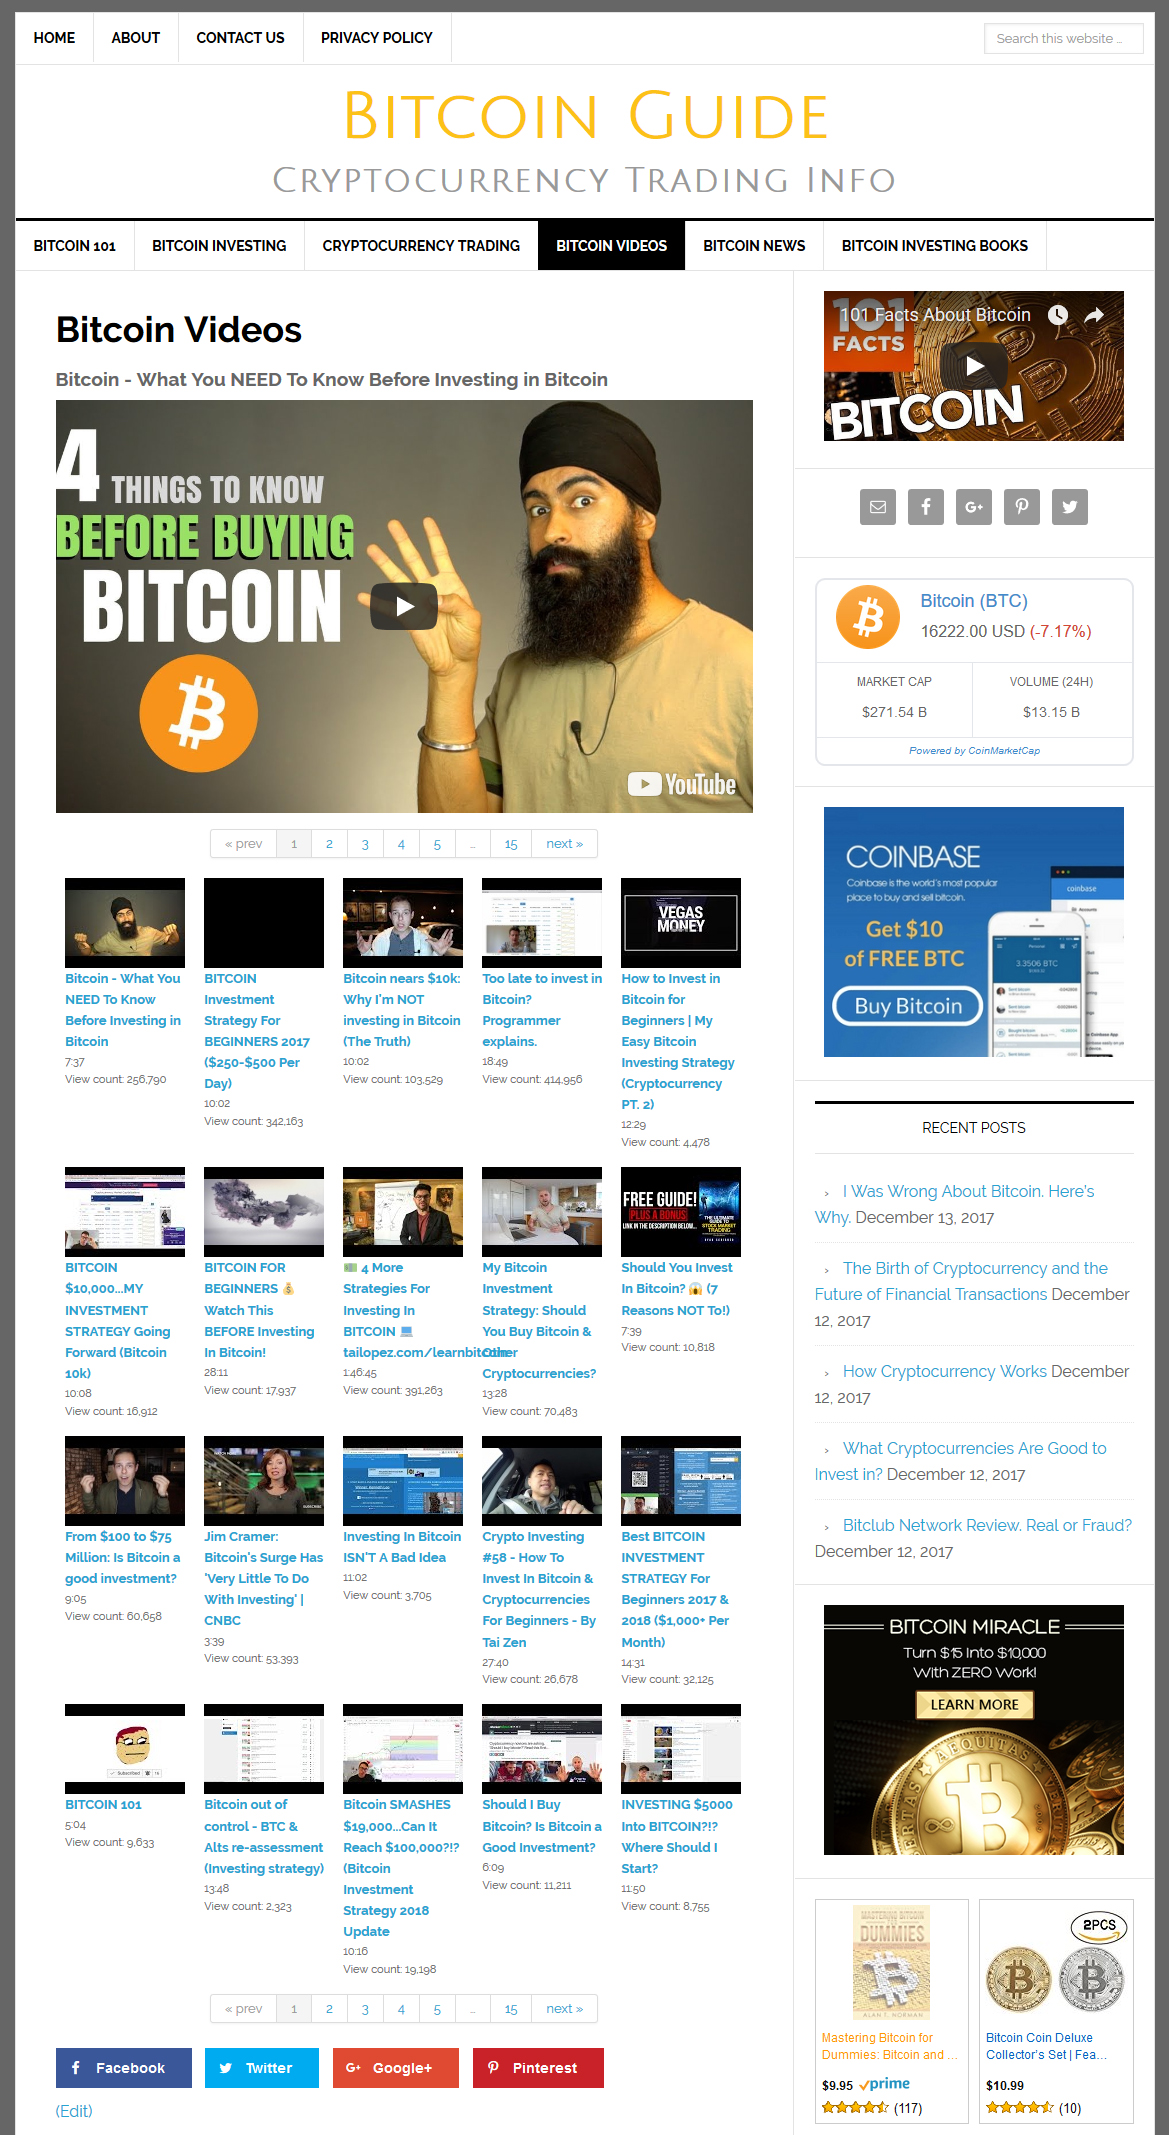 Websites That Use Bitcoin